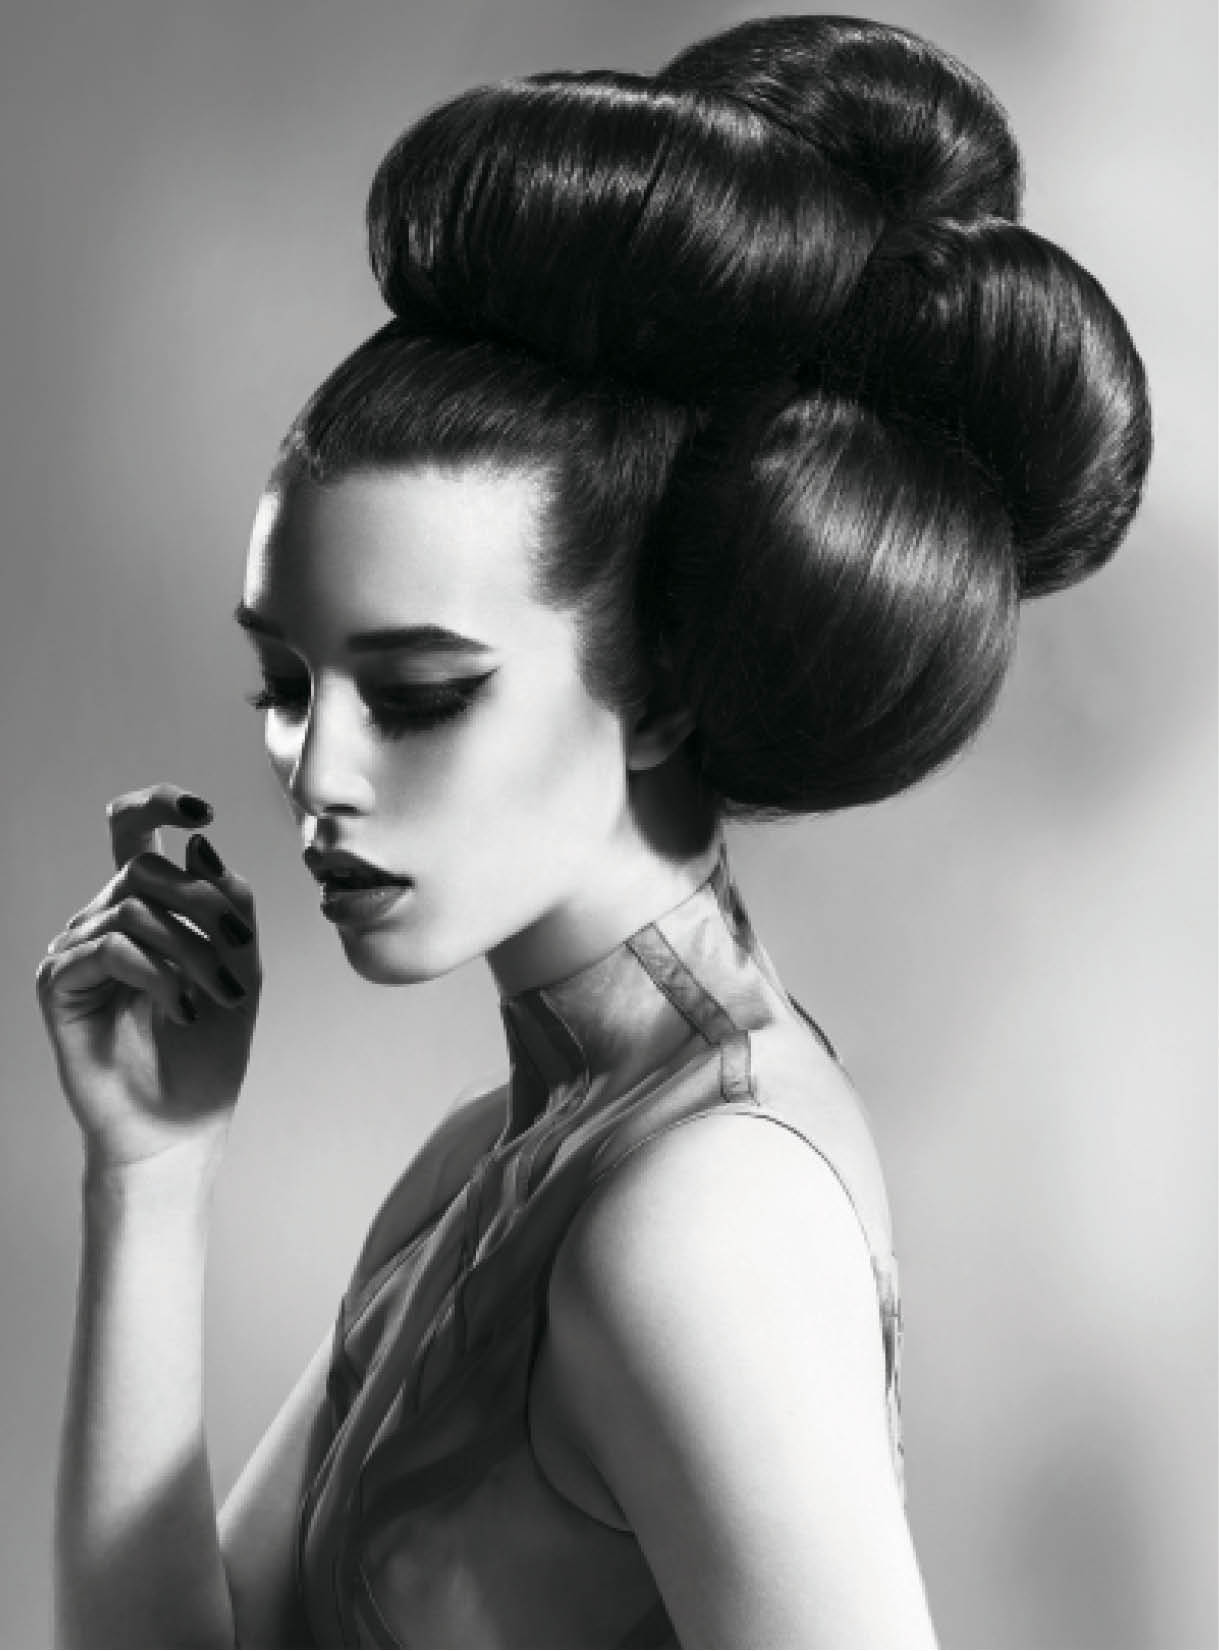 For this voluminous updo, Mather pulled hair into two high ponytails, about one inch apart. She created padding using hair donuts and molded the hair into buns around them.